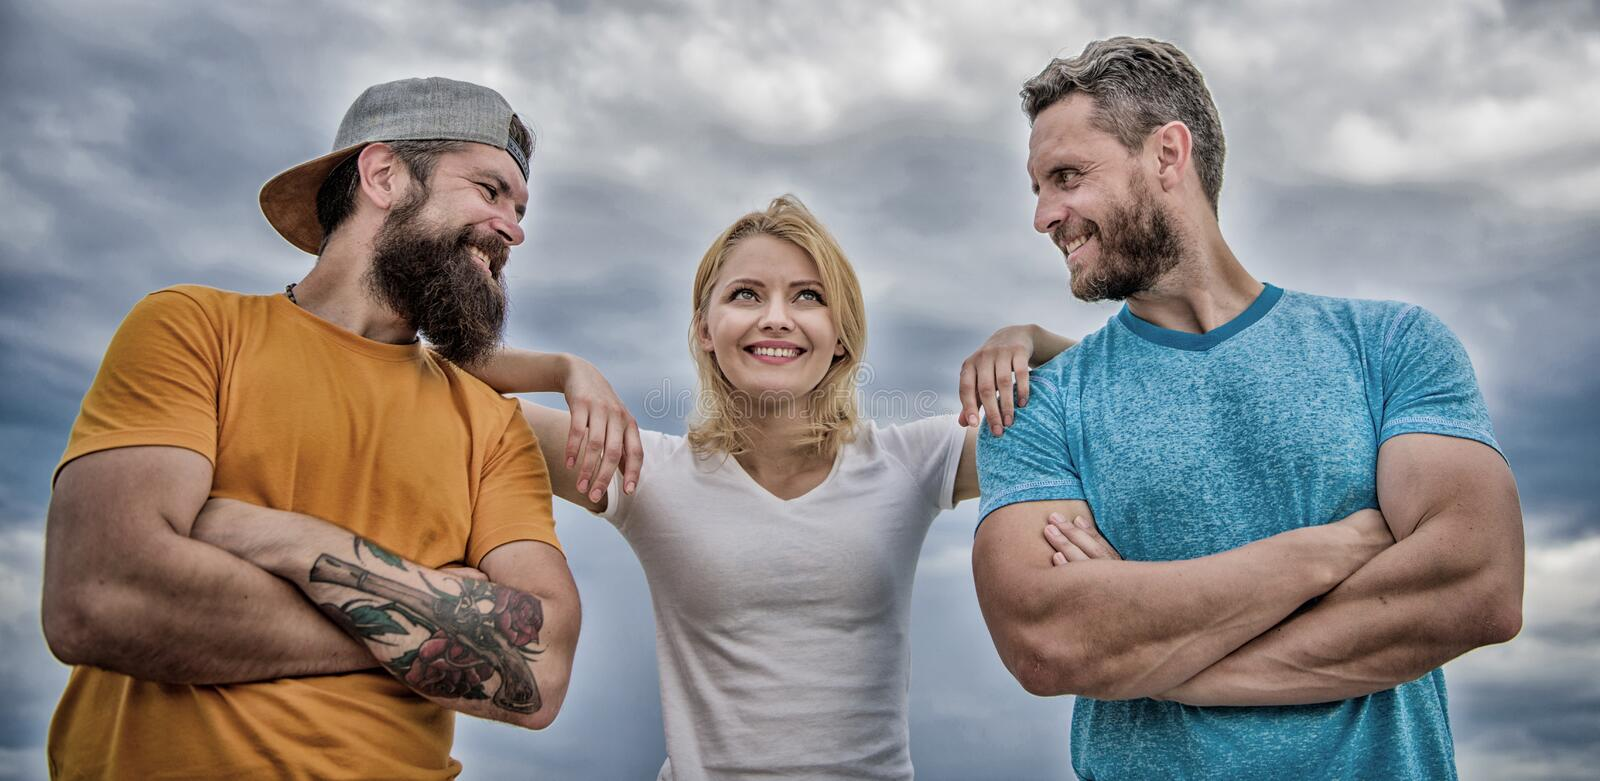 Shoulder on which you can rely. Woman and men look confident while stay close each other like team. Feel comfortable. With friends teammates. Trust and support royalty free stock photography